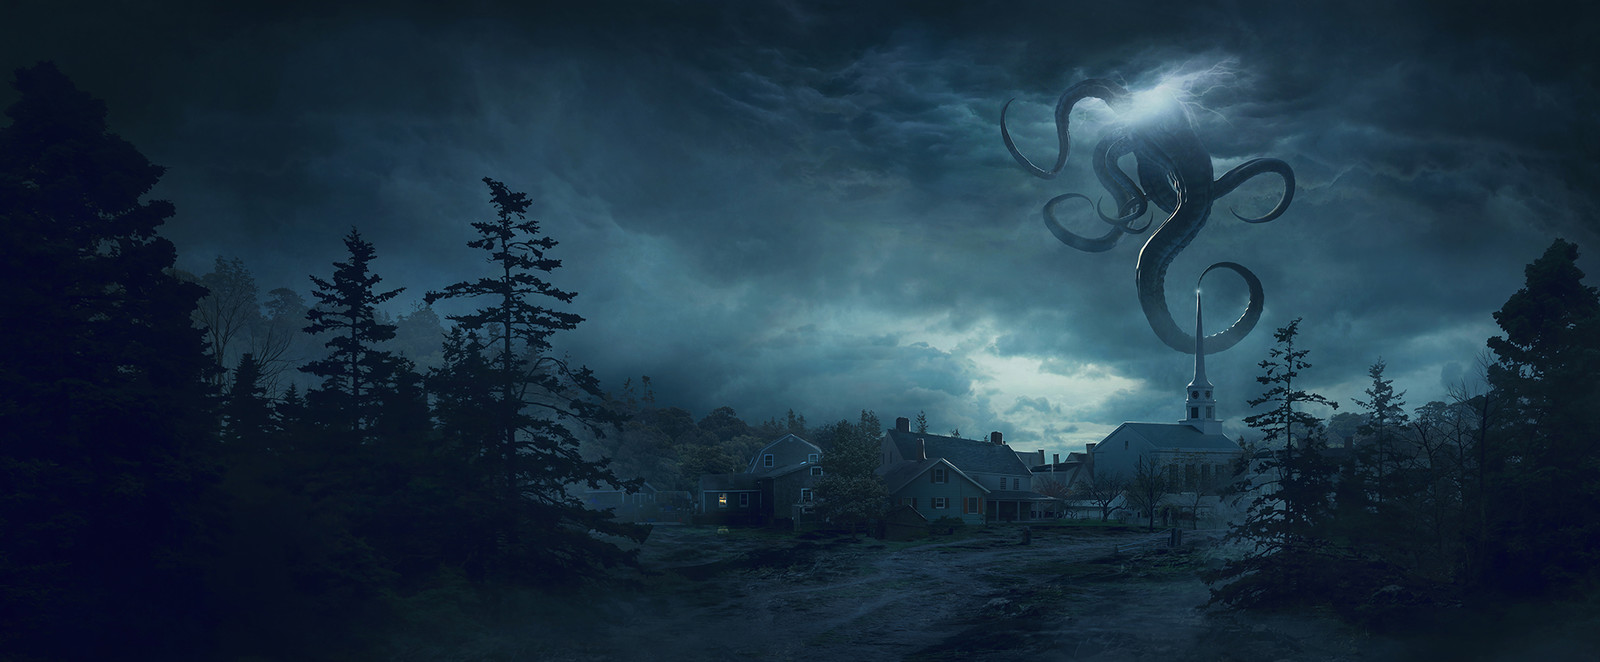 H.P. LOVECRAFT The Fear from beyond - New England village